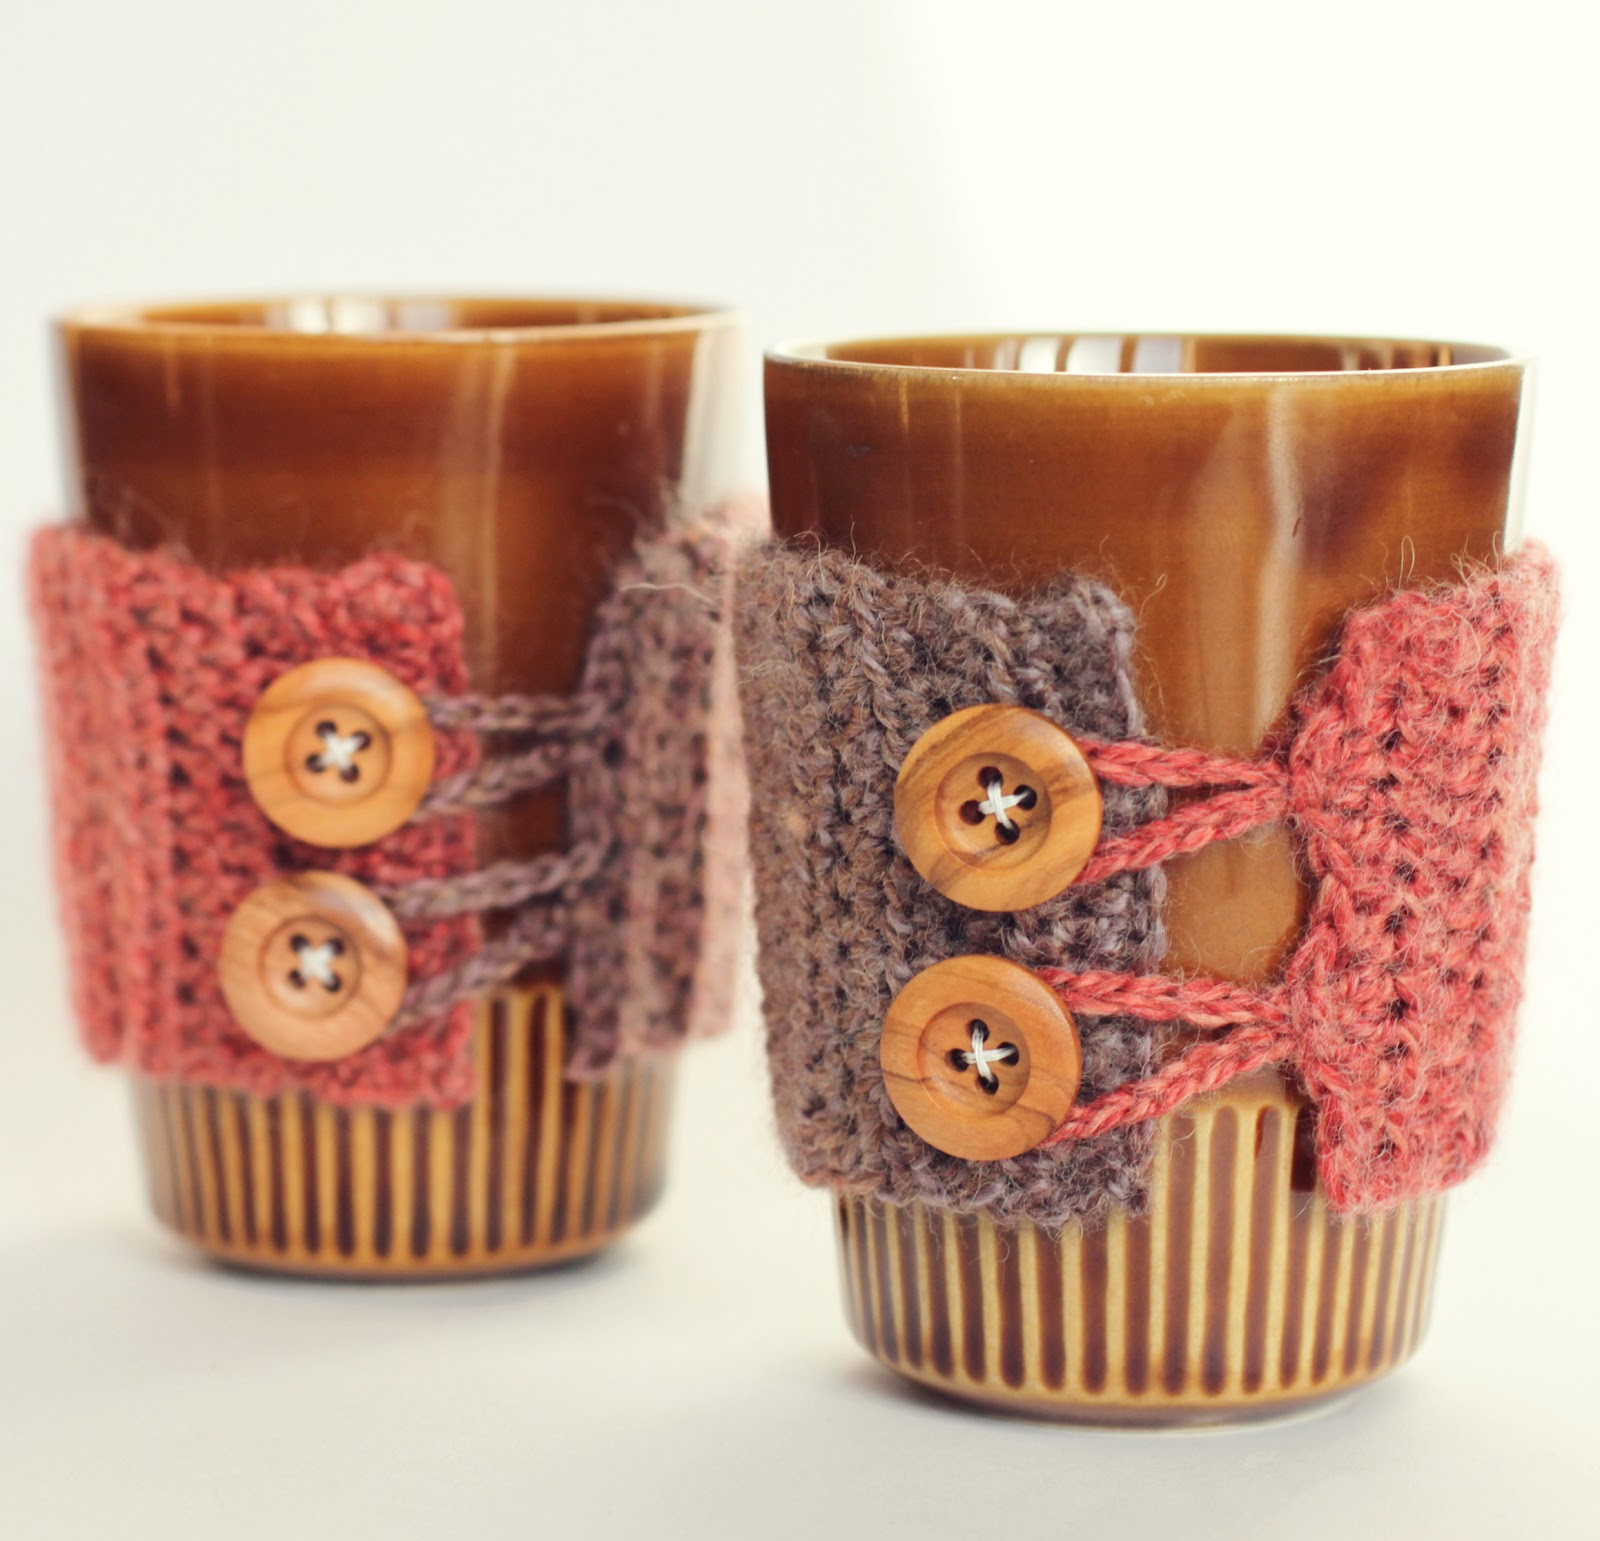 Crochet Coffee Cup Cozy Lovely L♥valizious Mug Cozy Tutorial Of Crochet Coffee Cup Cozy Inspirational 35 Easy Crochet Patterns